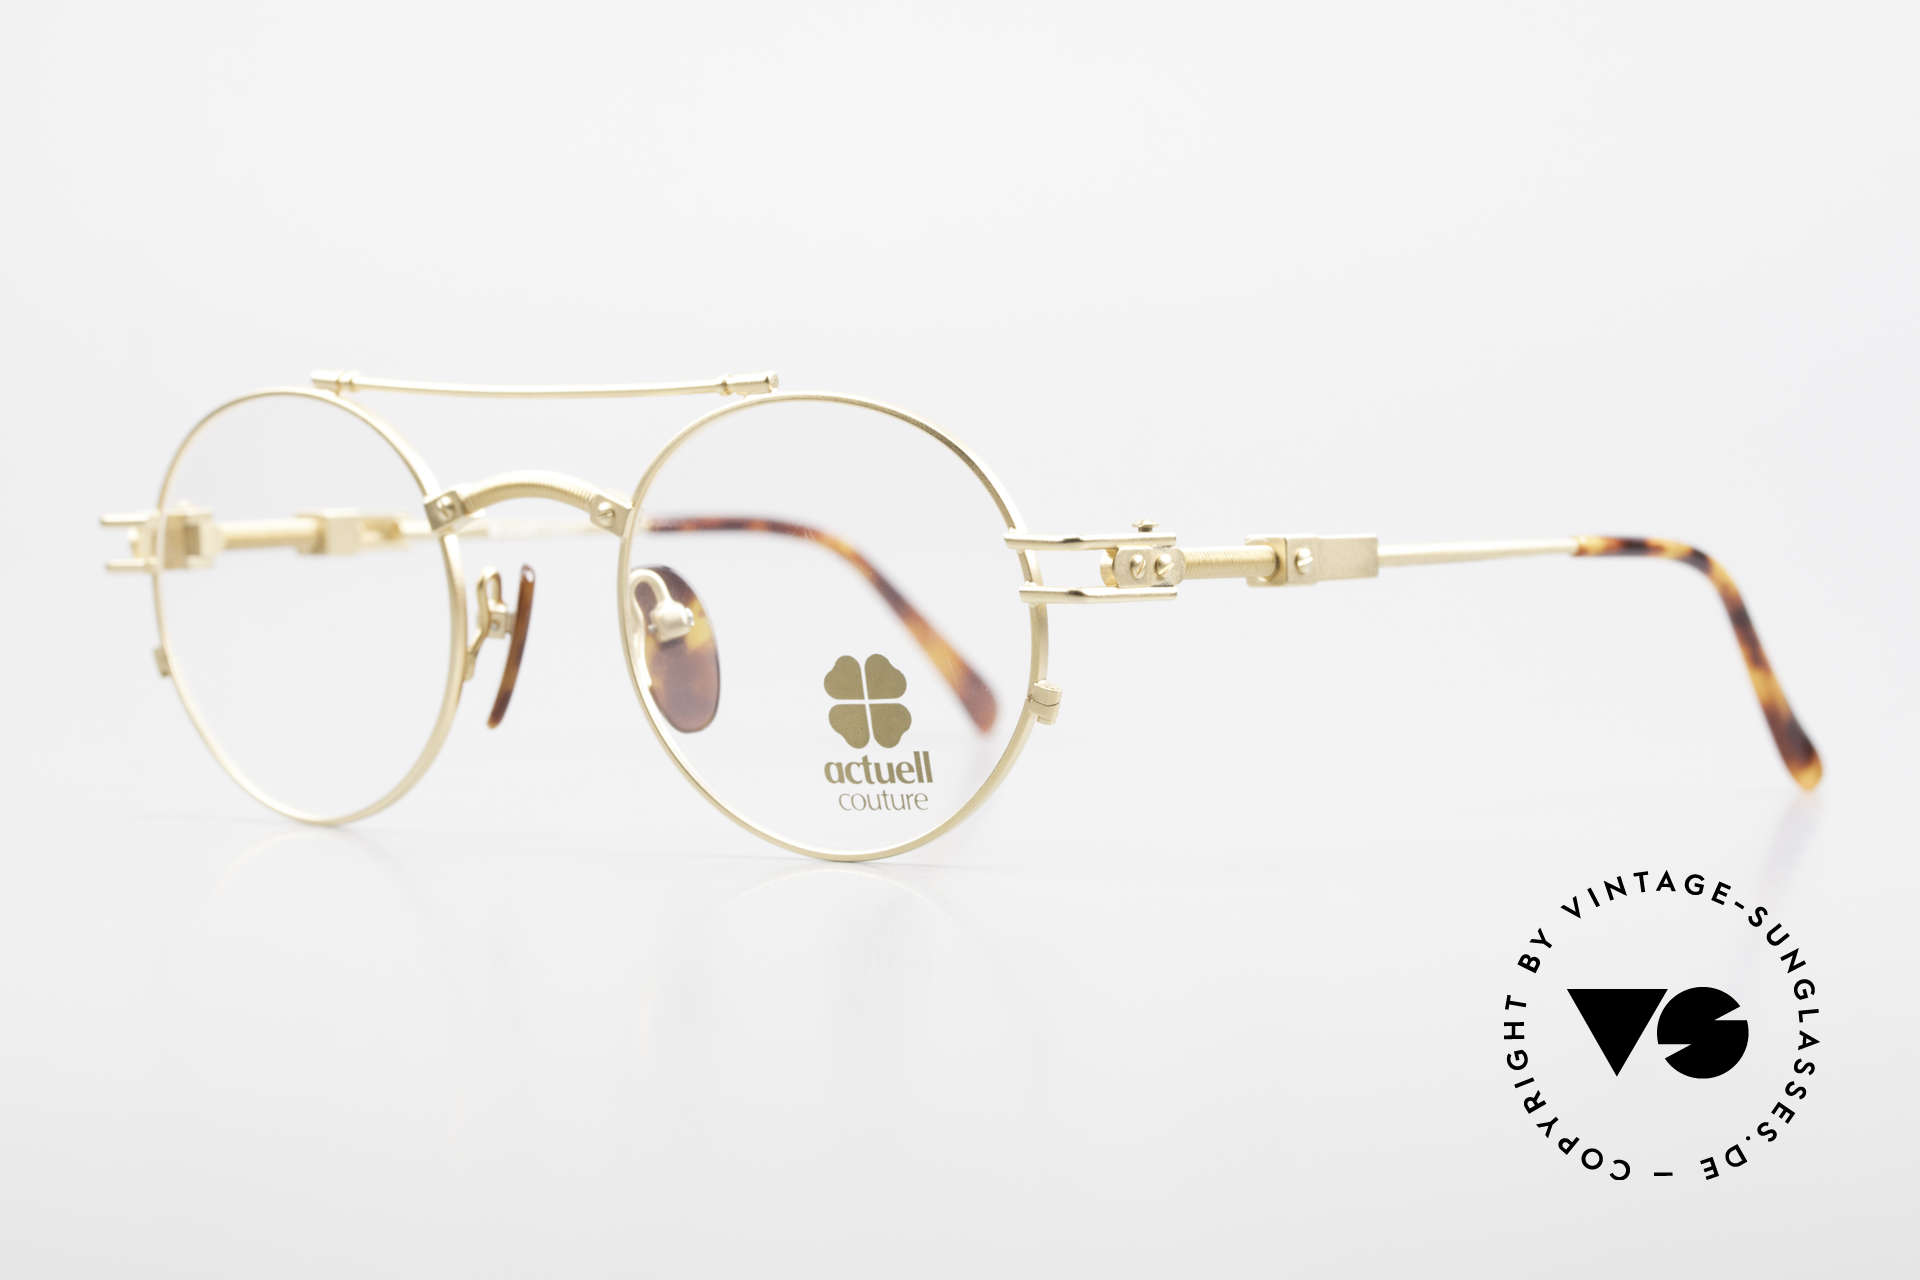 Actuell Couture 802 Round 80's Glasses Steampunk, frame with many fancy details, Steampunk!, Made for Men and Women